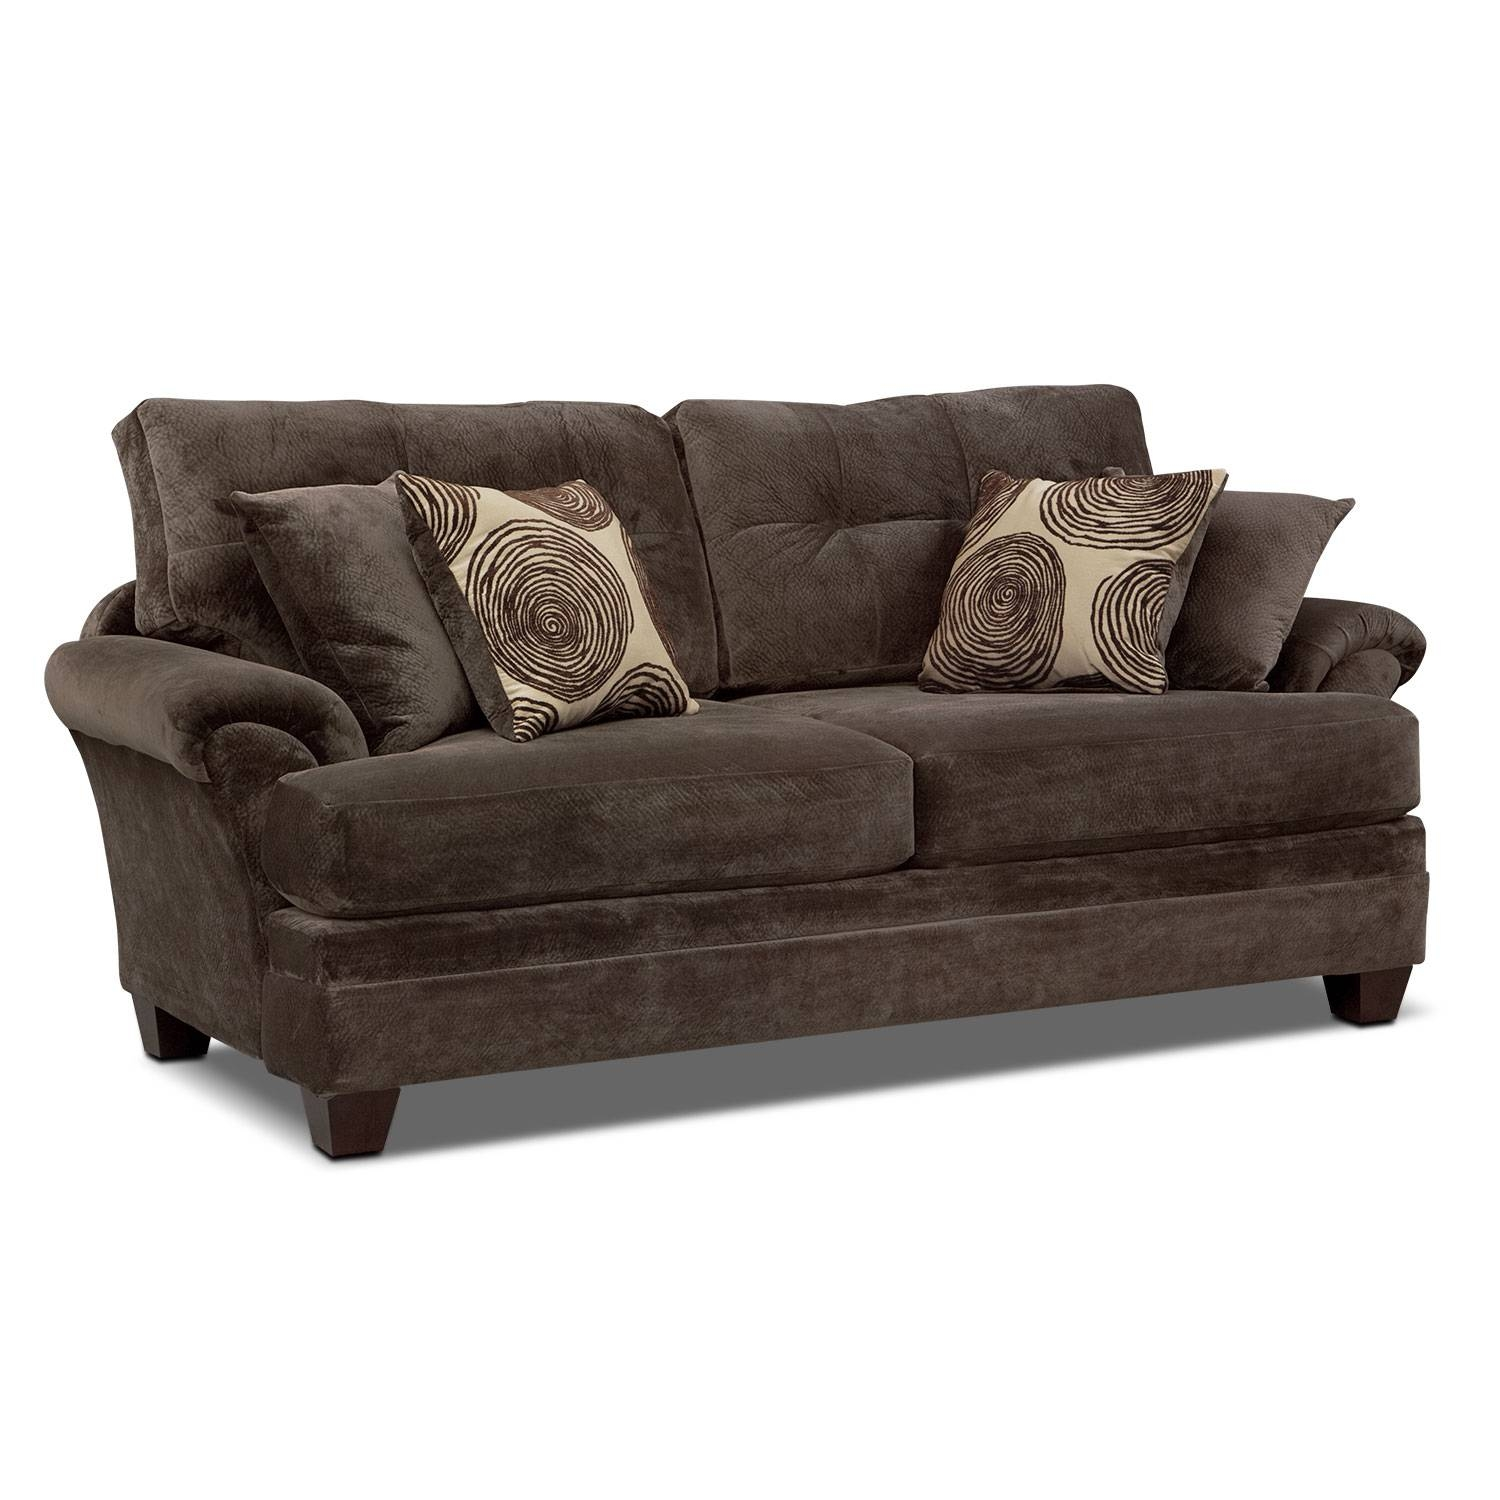 Cordelle Sofa And Swivel Chair Set - Chocolate | Value City Furniture regarding Sofa With Swivel Chair (Image 5 of 30)